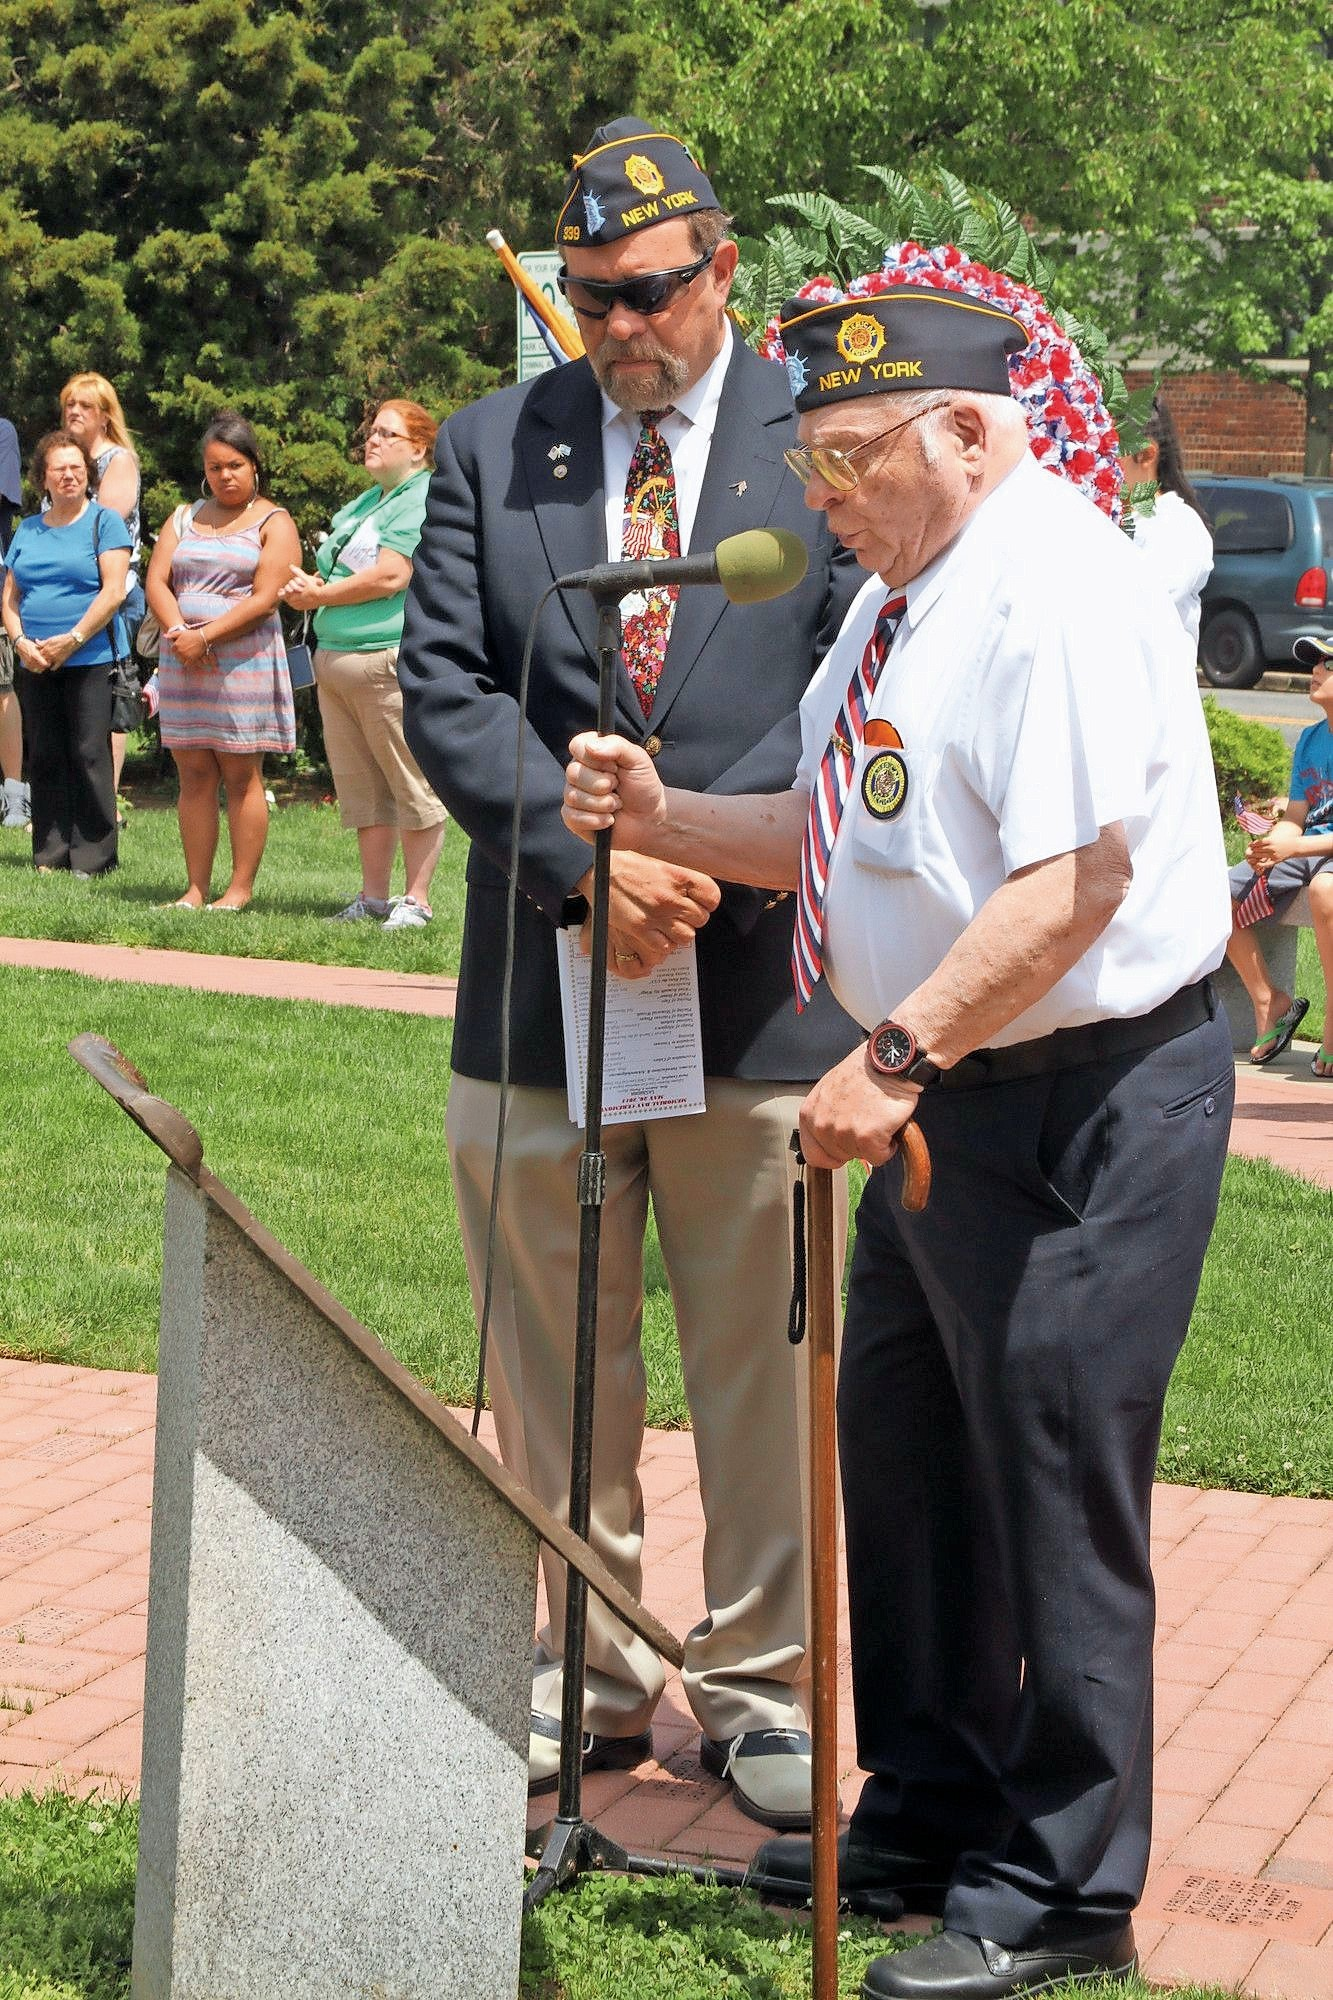 Veterans monuments such as the one in Andrew J. Parise Cedarhurst Park will be documented as part of a nationwide project. At left Syd Mandelbaum, now commander of the Lawrence-Cedarhurst American Legion Post 339, with former post commander, Harry Sidor.